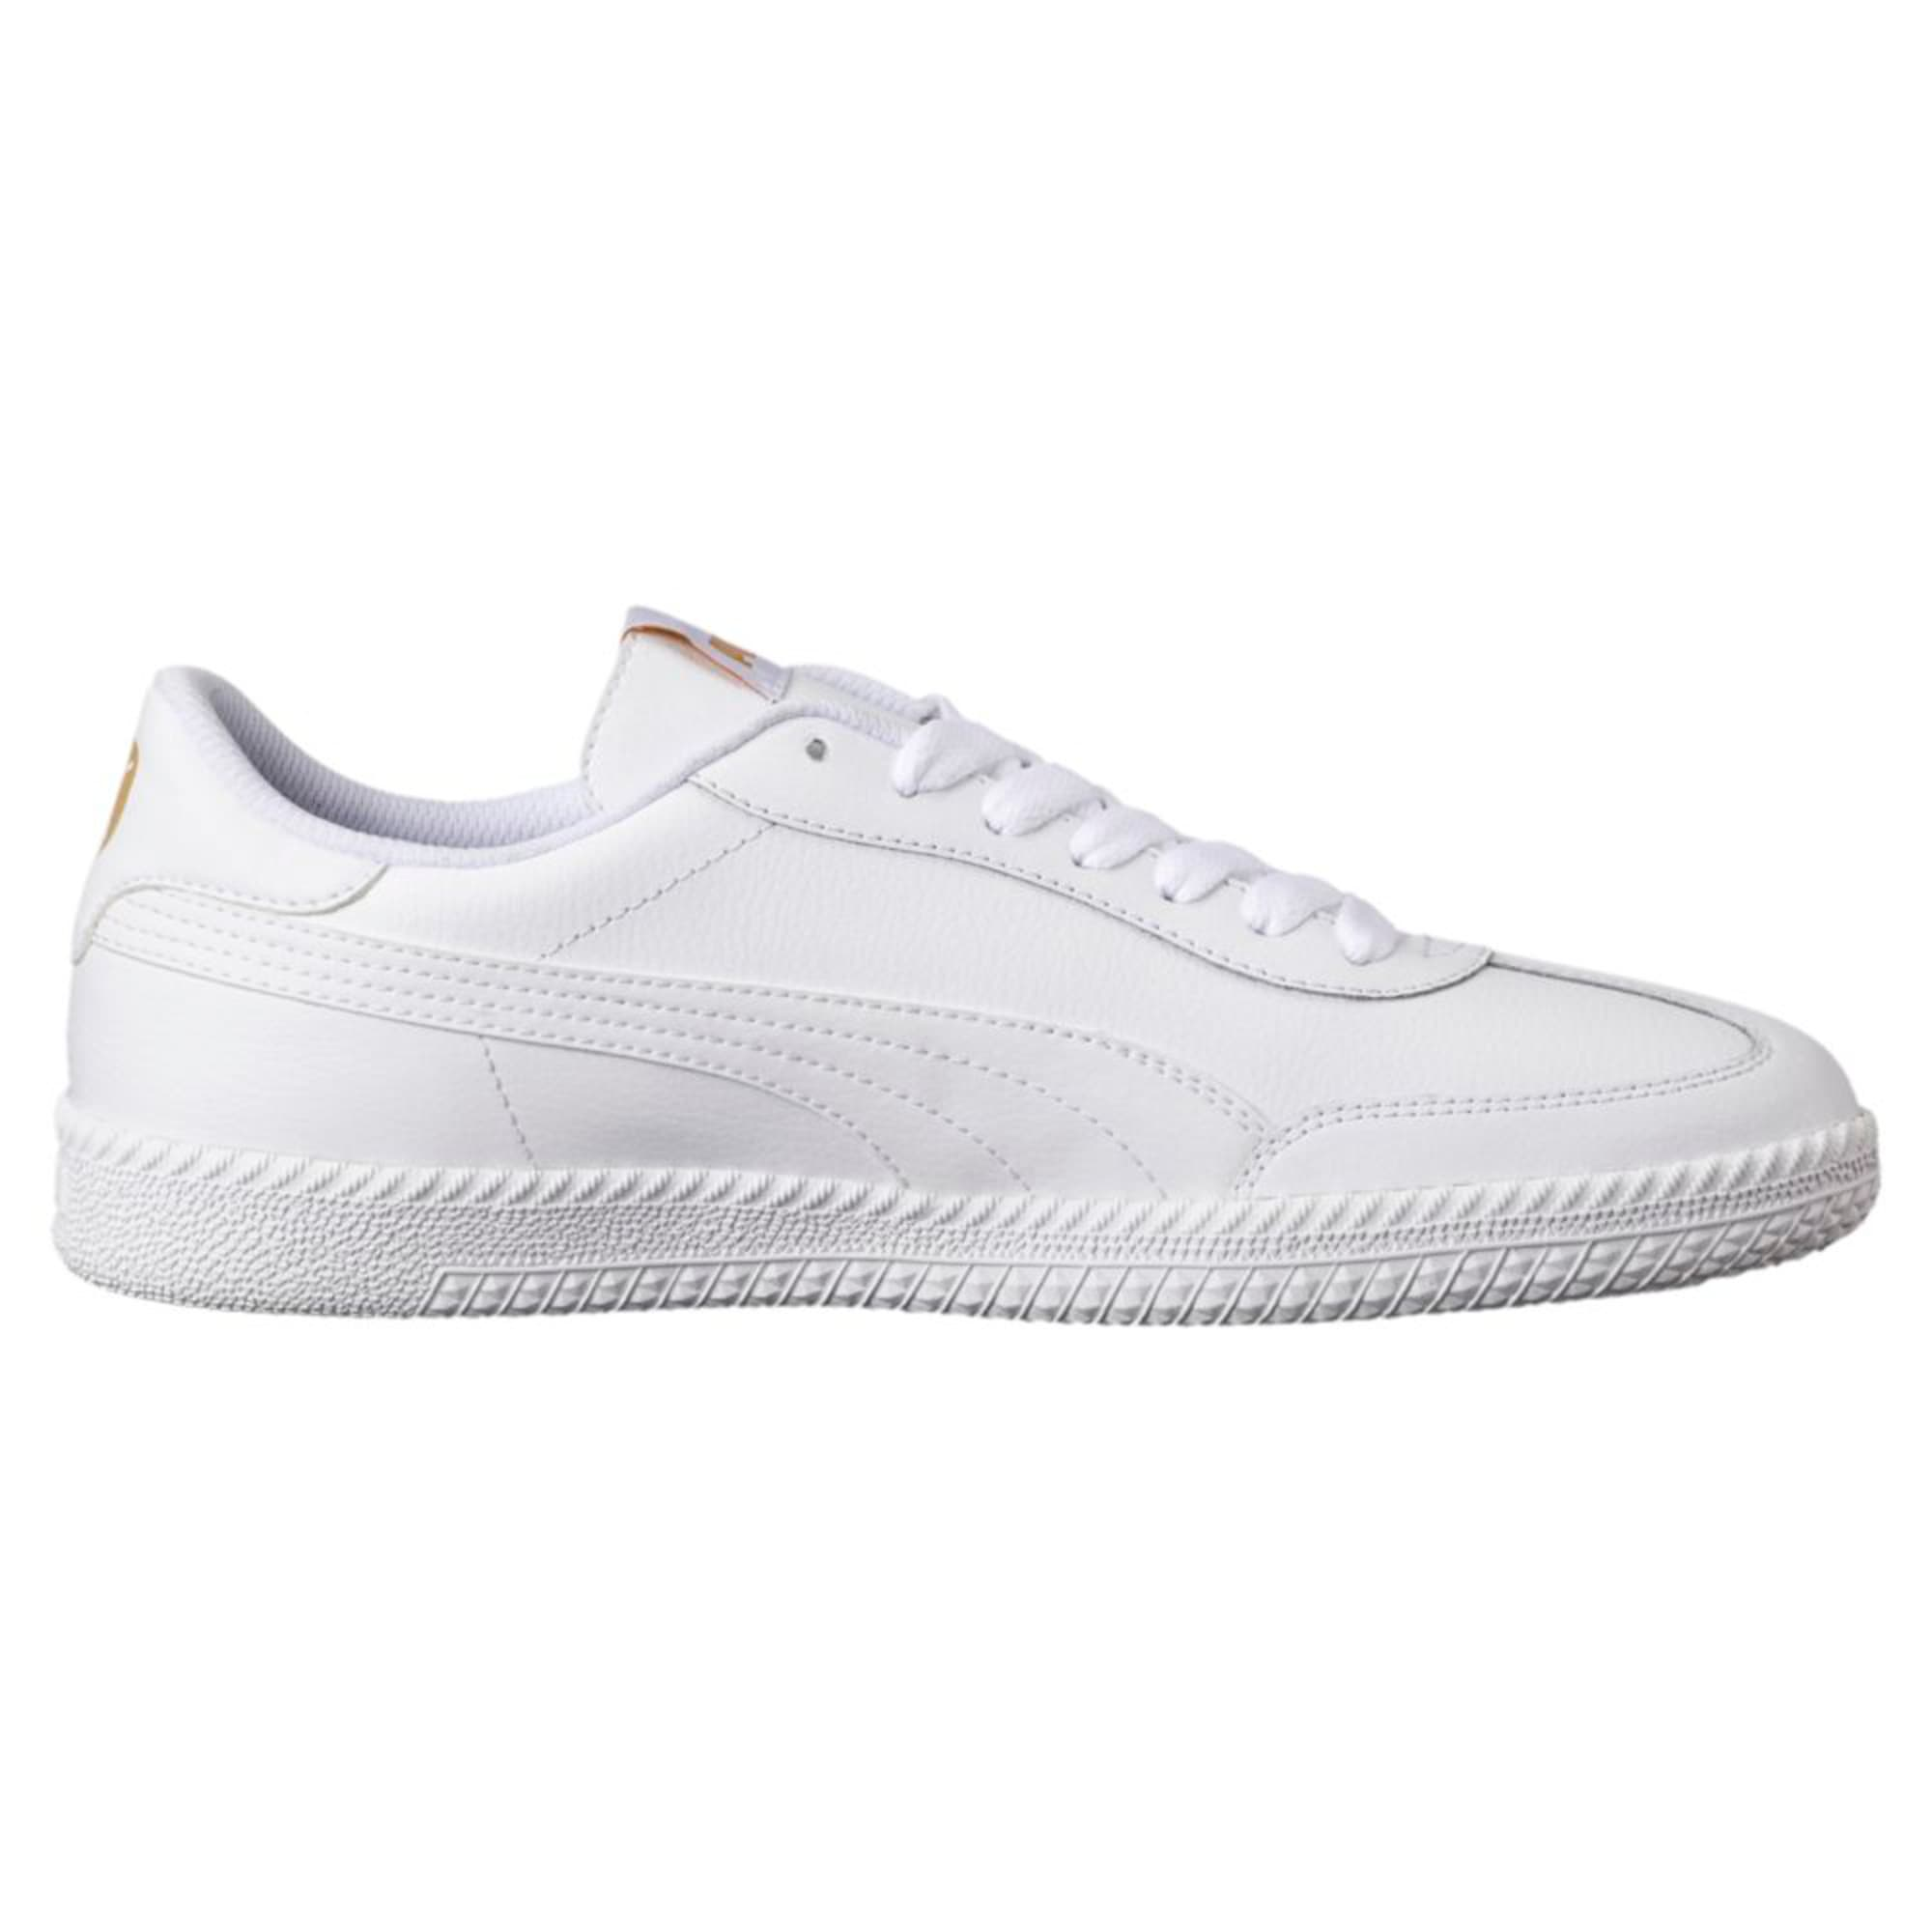 Thumbnail 2 of Astro Cup Leather Trainers, Puma White-Puma White, medium-IND